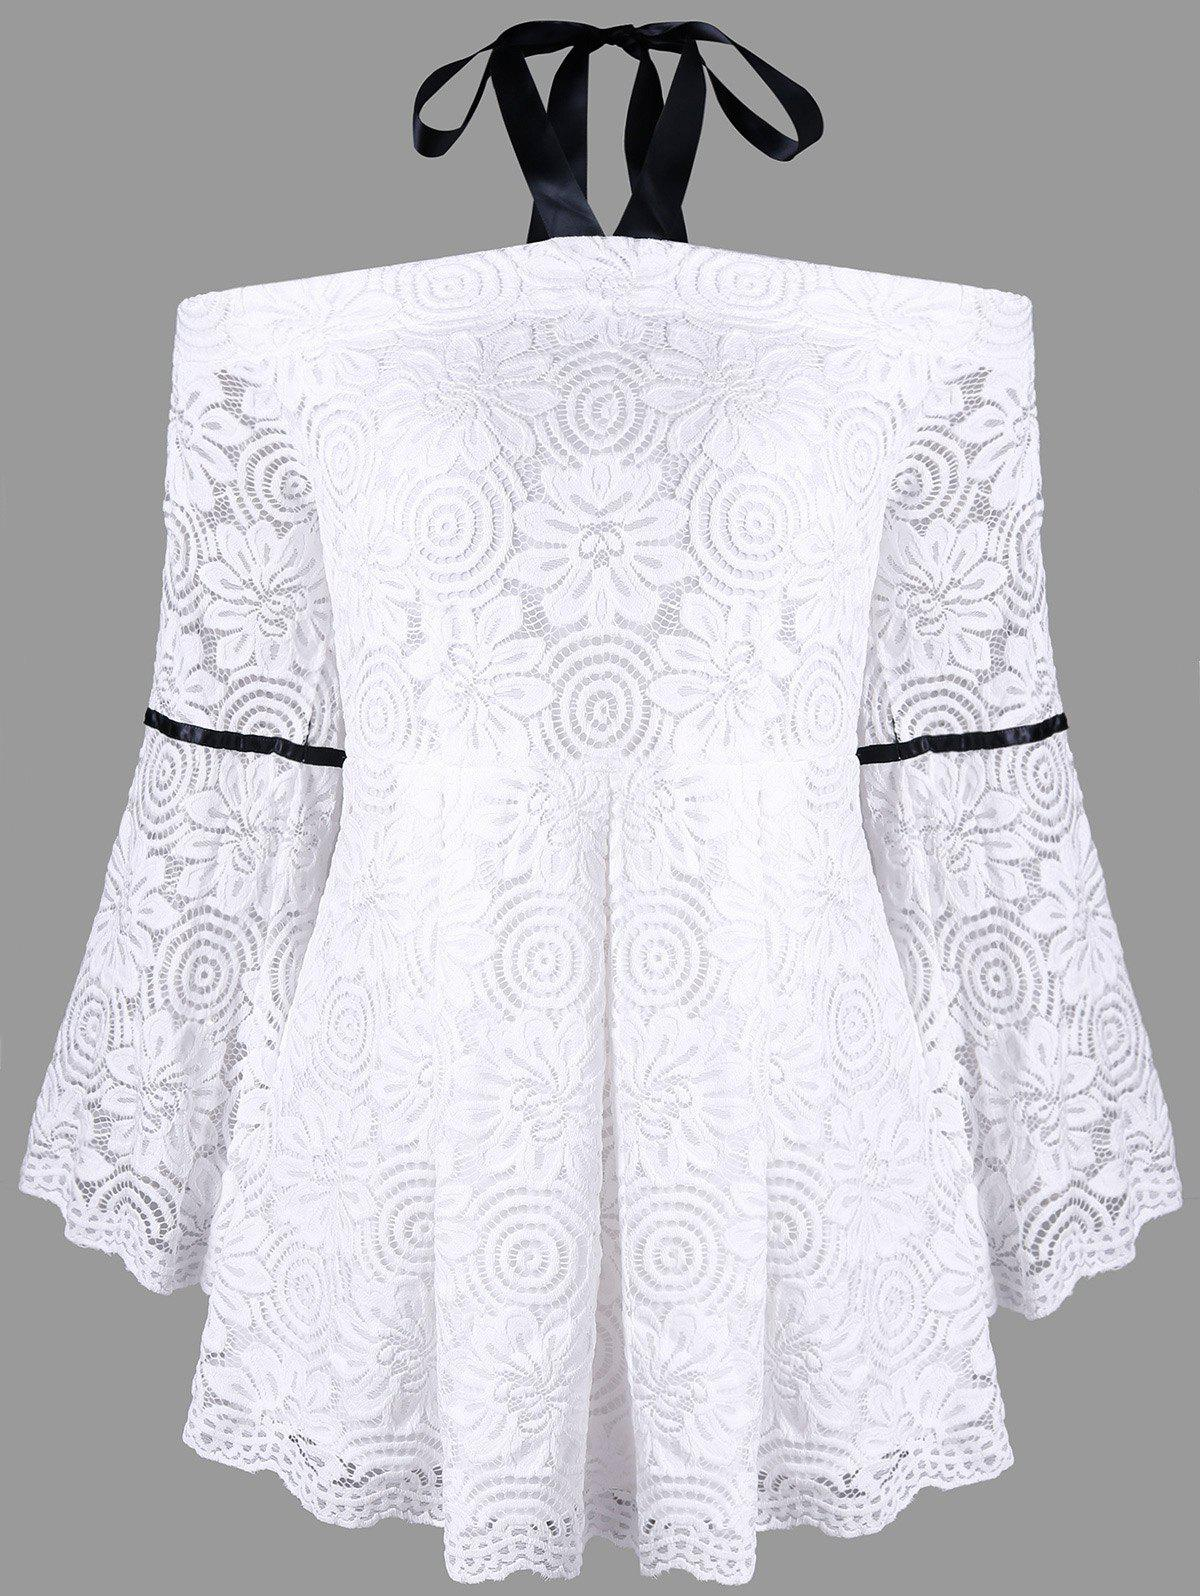 Plus Size Flare Sleeve Lace Halter Neck BlouseWOMEN<br><br>Size: 3XL; Color: WHITE; Material: Cotton Blends,Nylon; Shirt Length: Regular; Sleeve Length: Full; Collar: Halter Neck; Style: Fashion; Season: Fall,Spring; Sleeve Type: Flare Sleeve; Embellishment: Lace; Pattern Type: Floral; Weight: 0.3500kg; Package Contents: 1 x Blouse;